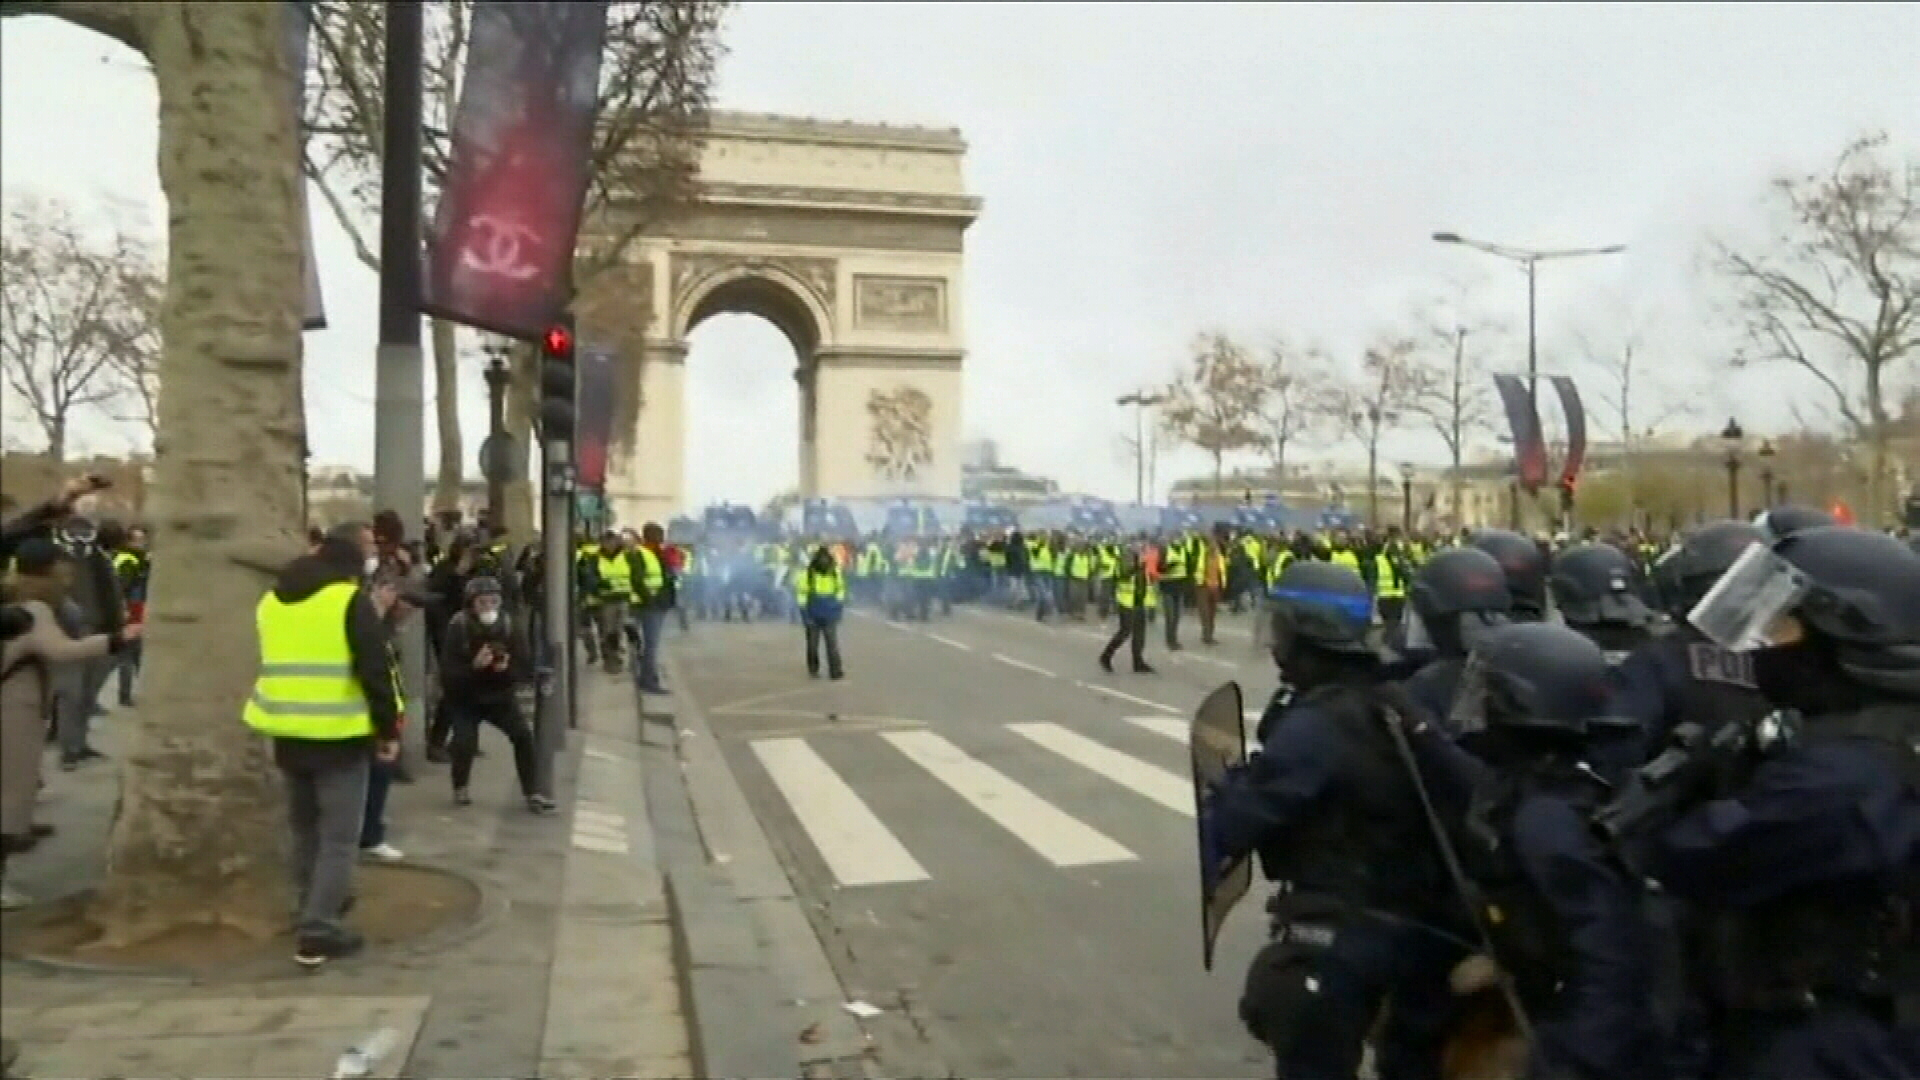 Protestors take over Paris streets in violent demonstrations